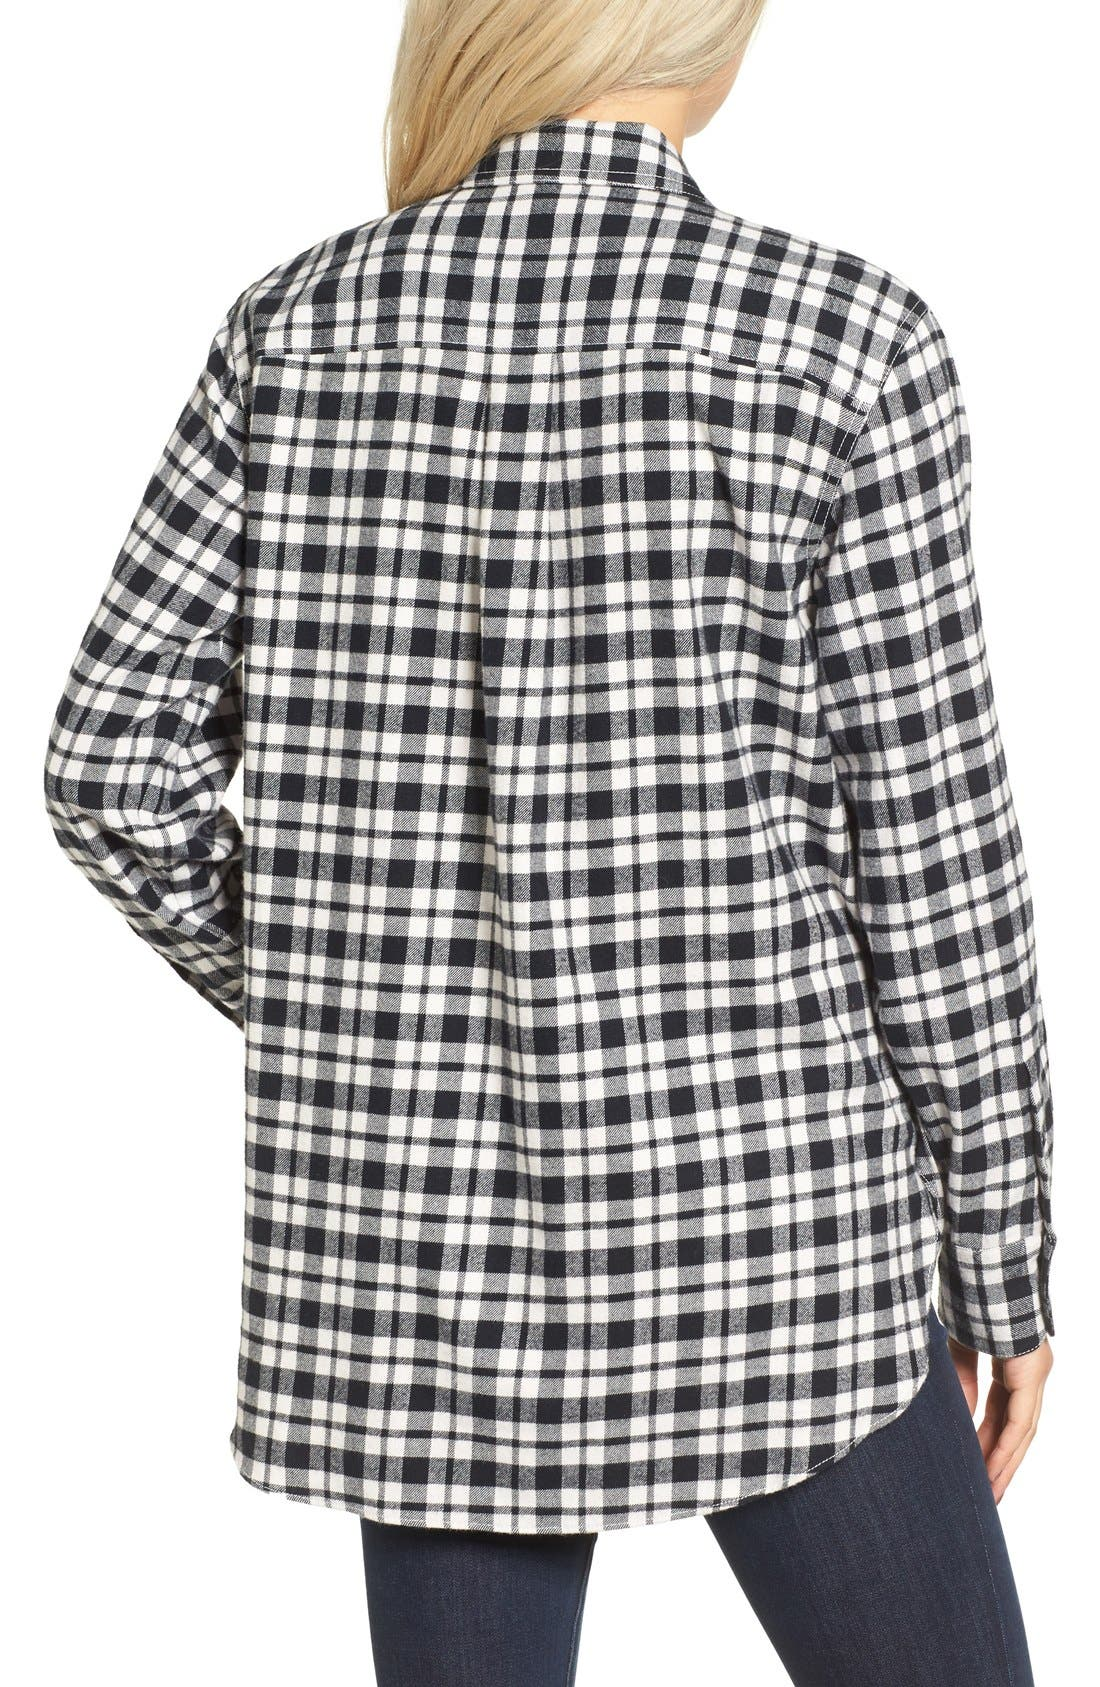 MADEWELL, Oversize Flannel Shirt, Alternate thumbnail 7, color, 002